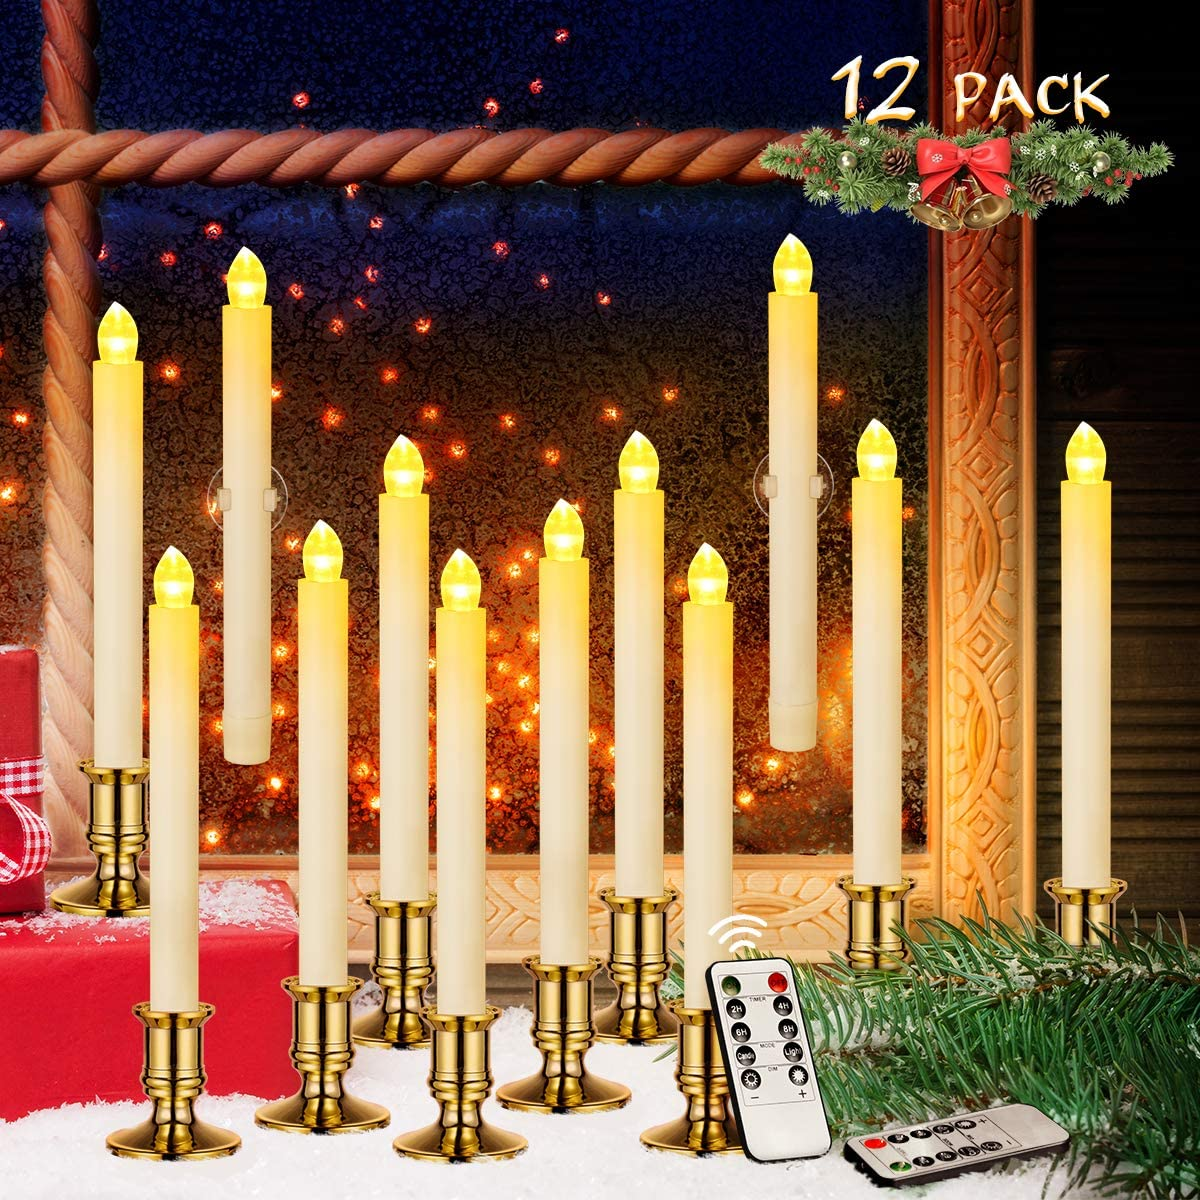 Window Candles, 12 Pack Battery Powered Window Candles Flameless Taper Candles for Window, Holiday Decorations